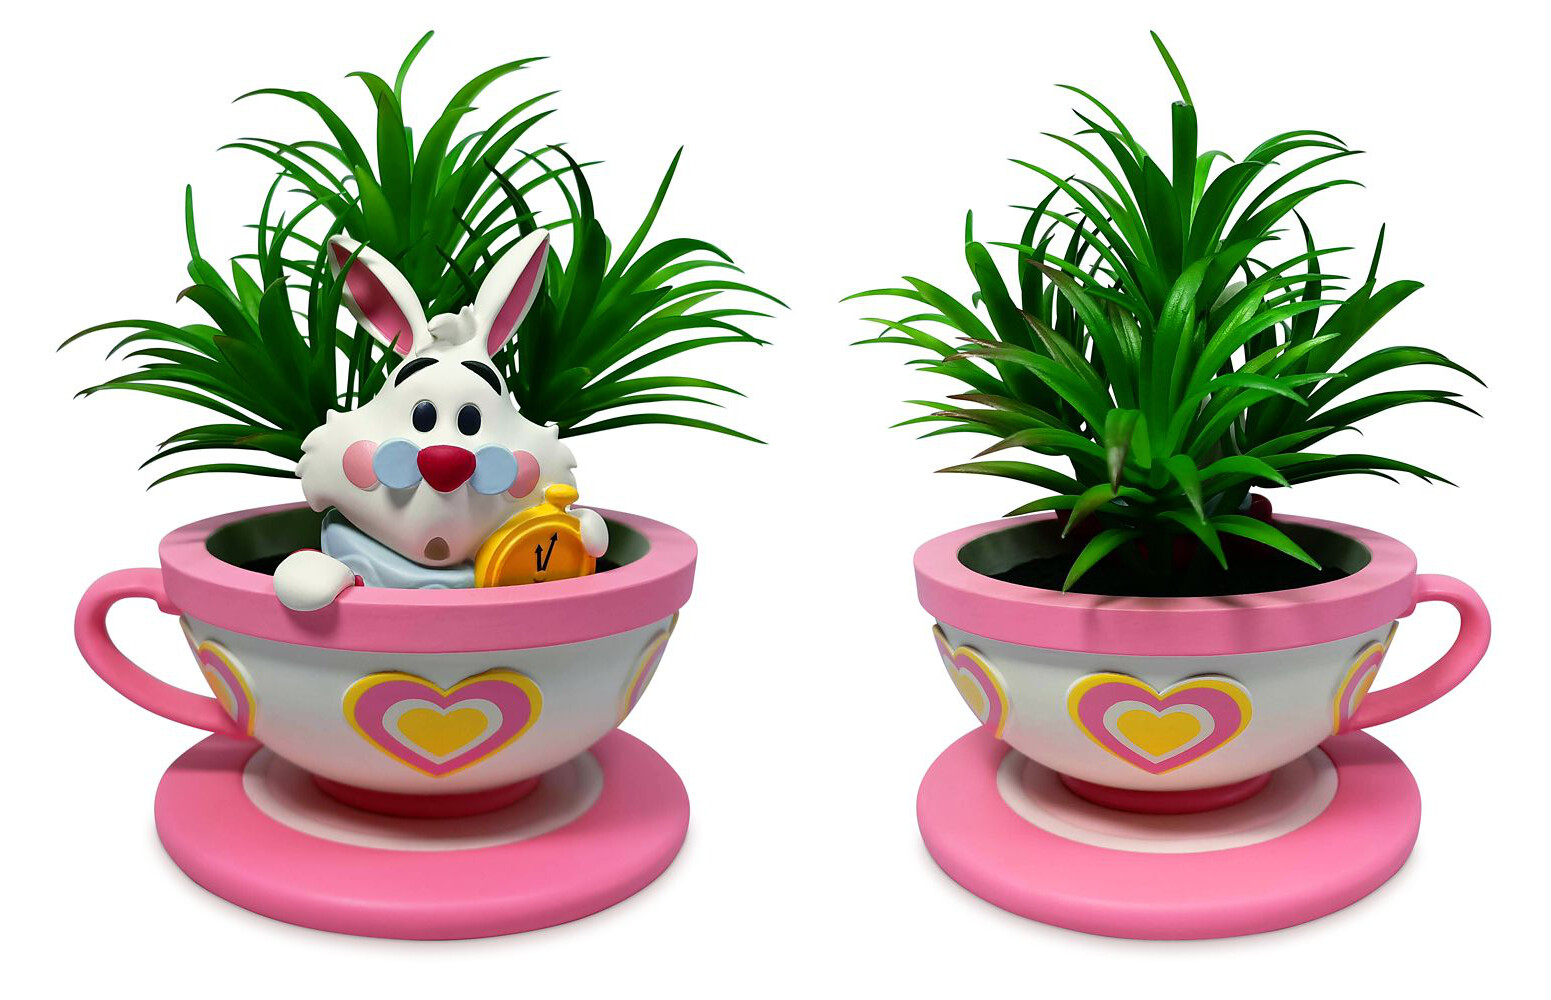 White Rabbit Succulent Planter - Actual Product Image